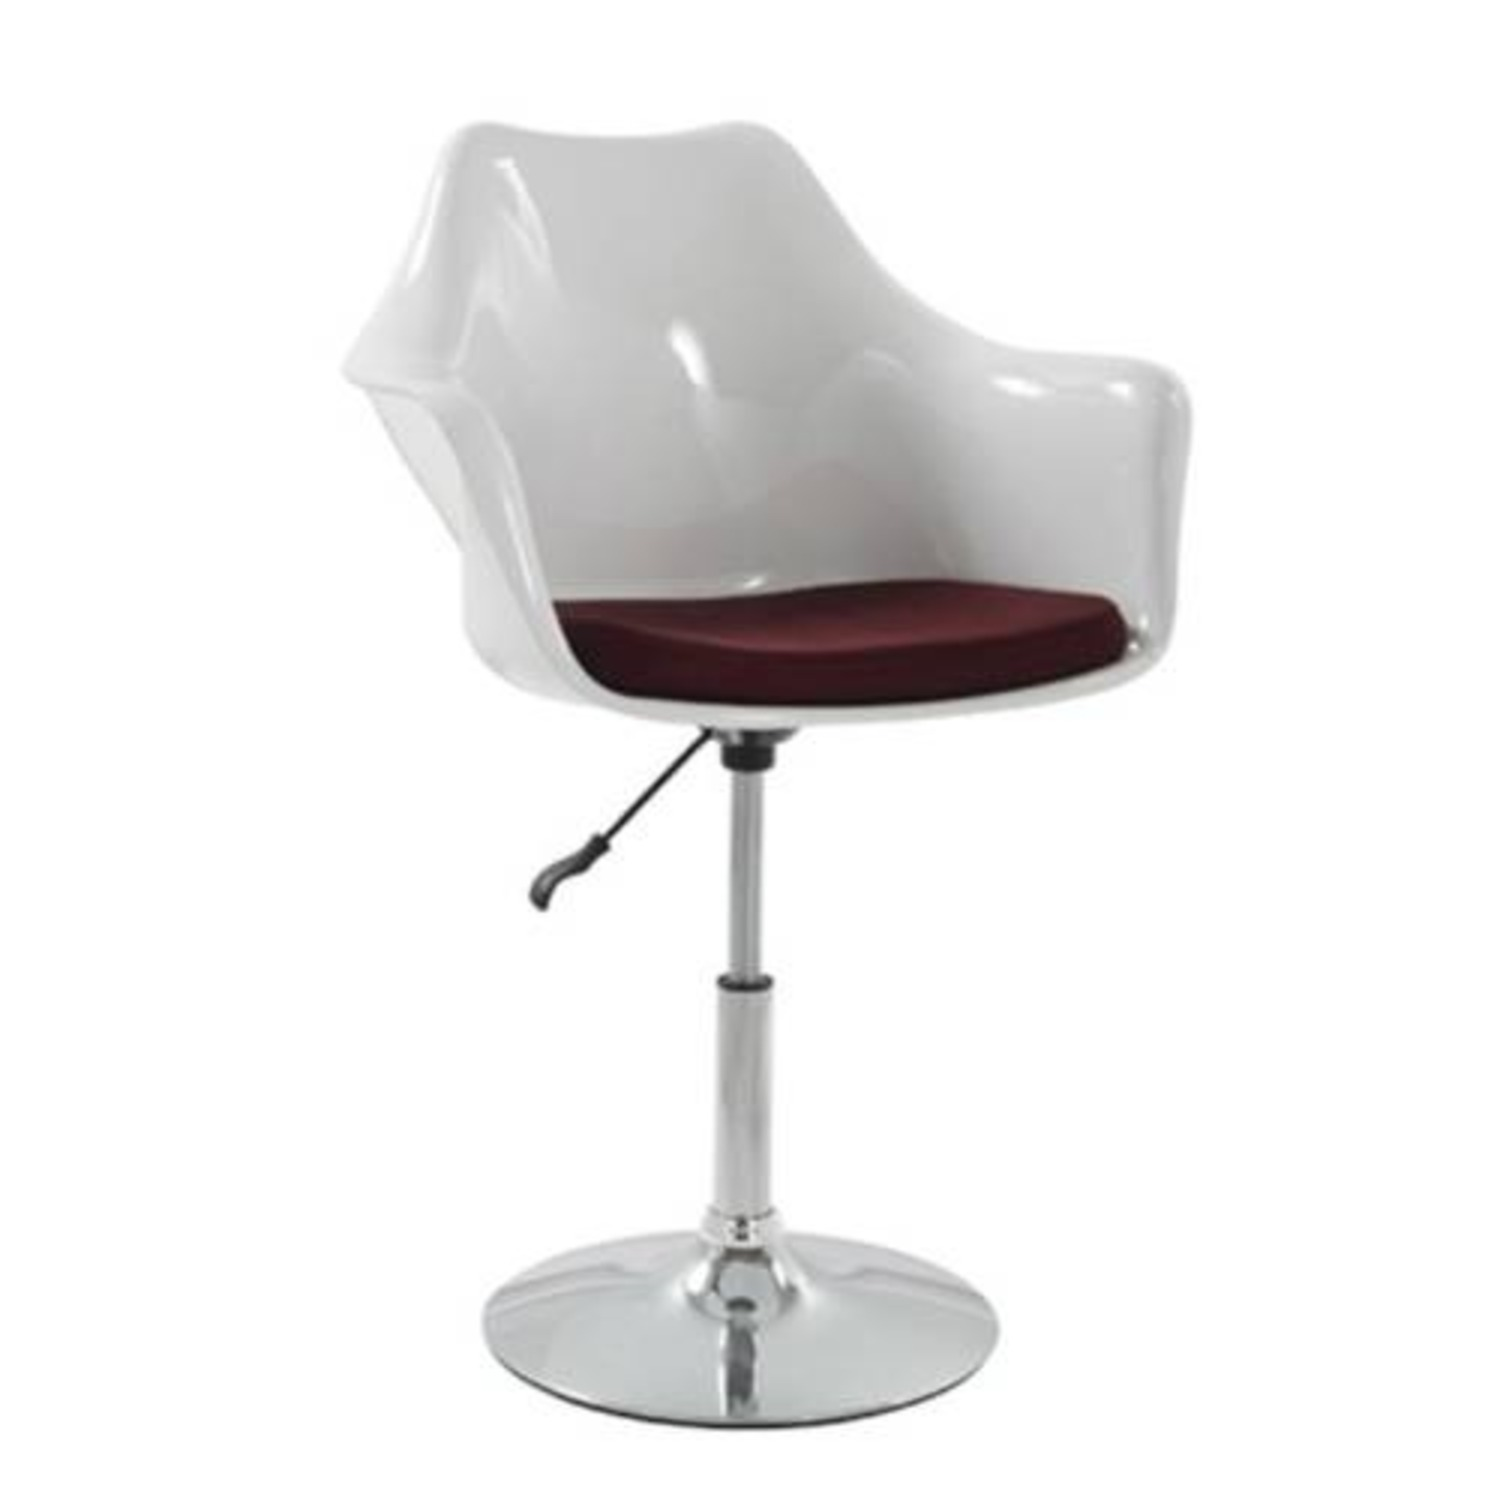 Height-Adjustable Swivel Arm Chair In White ABS - image-0